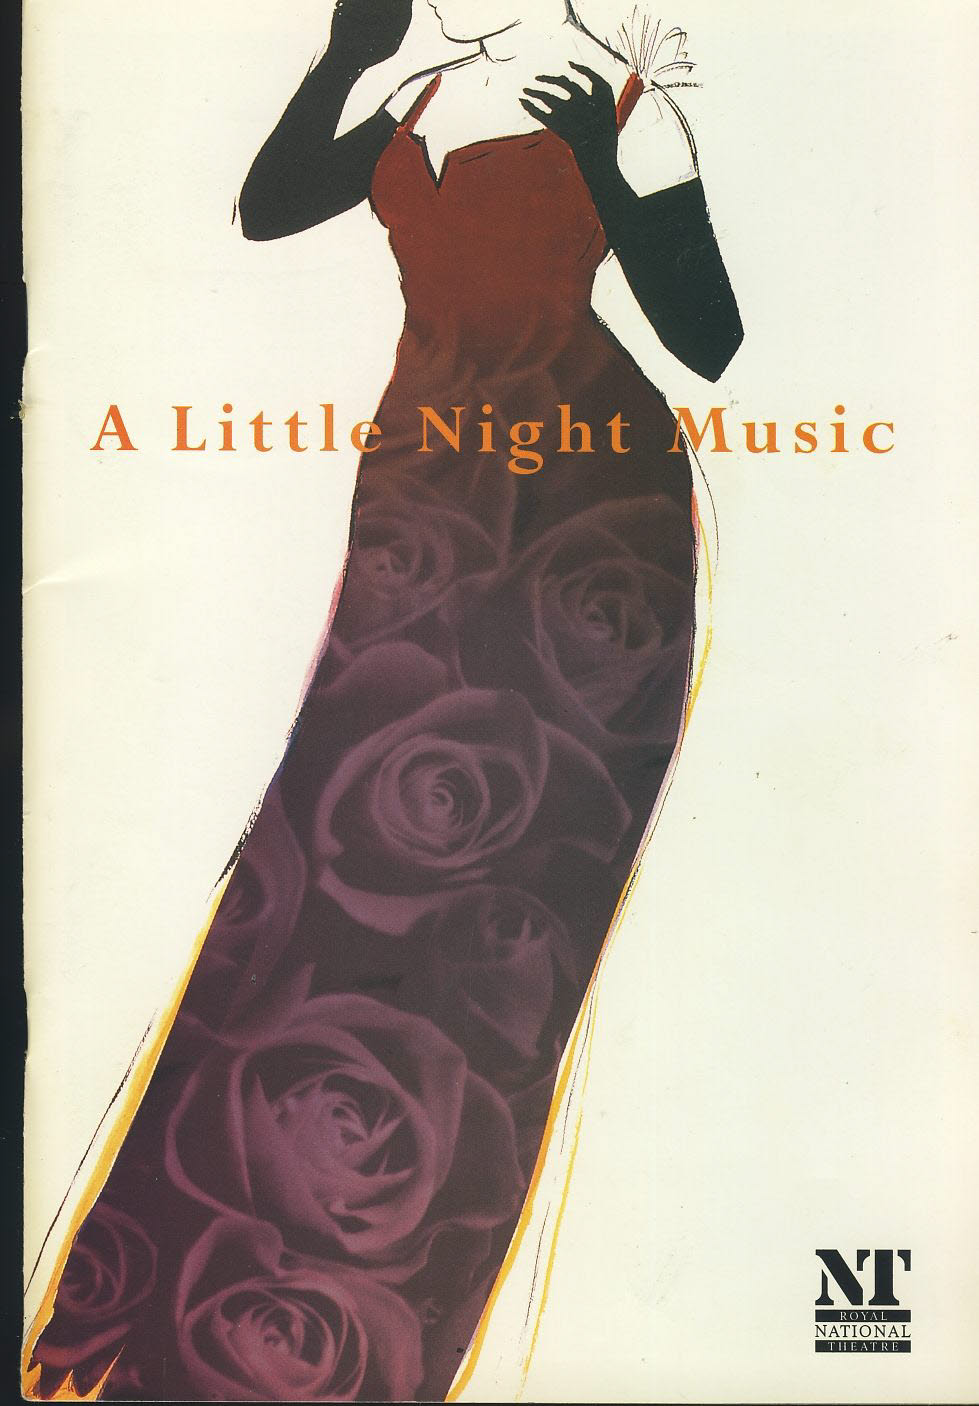 A Little Night Music JUDI DENCH NT National Theatre Programme refb1593 Used Programme in Very Good Condition.